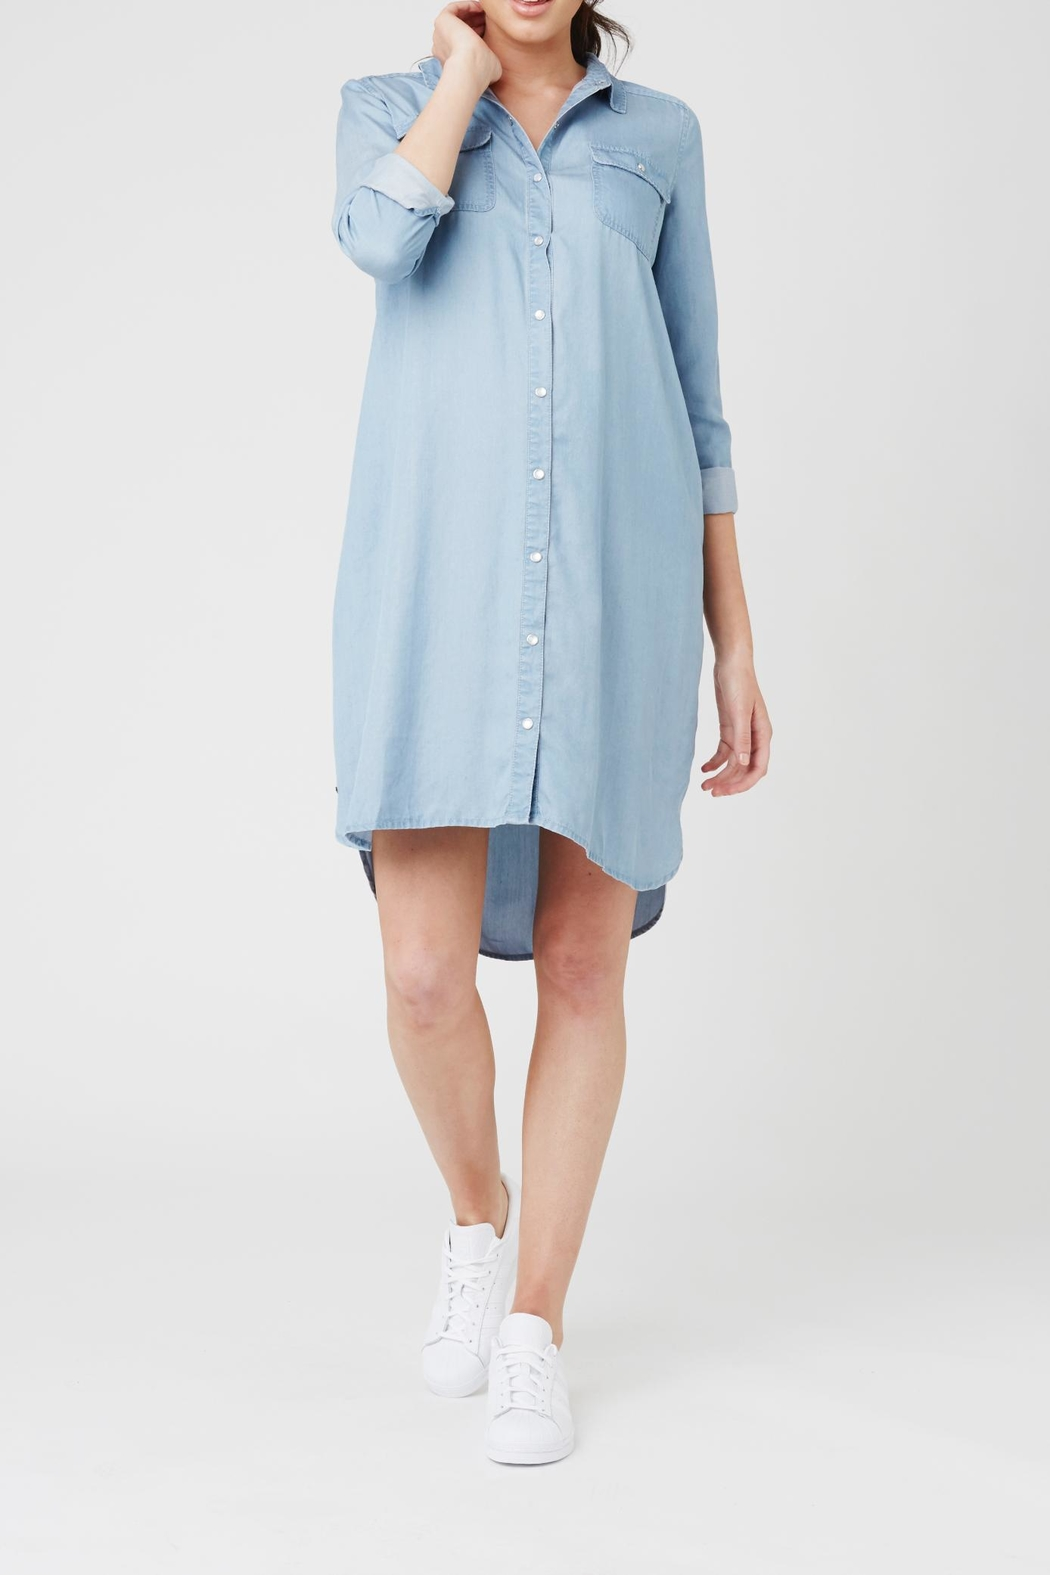 Ripe maternity weekend shirt dress from north carolina by bump ripe maternity weekend shirt dress front cropped image ombrellifo Image collections